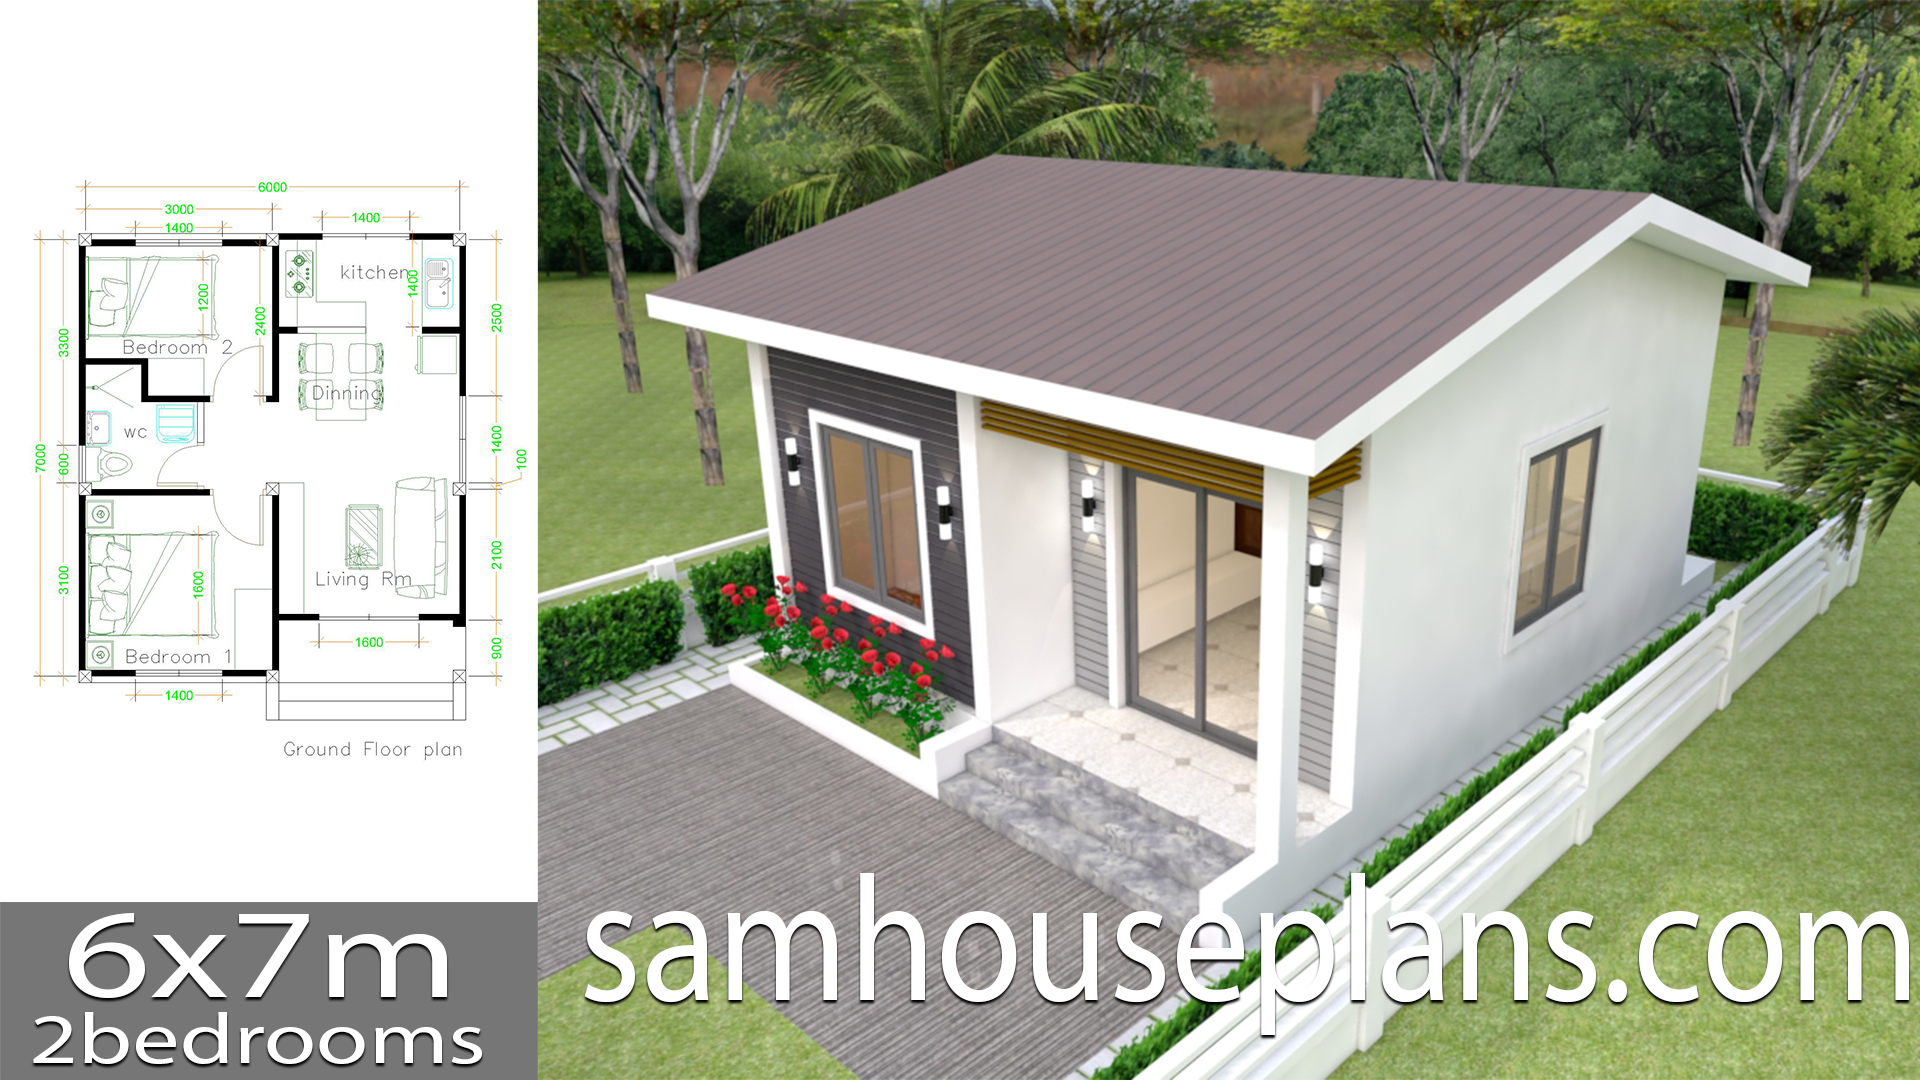 House Plans 6x7m with 2 bedrooms - Sam House Plans on very small house plans, modern house plans, bungalow house plans, small cottage house plans, kitchen house plans, luxury cottage house plans, two bedroom handicap house plans, sq ft. house plans, simple house plans, cute small house plans, 1bedroom house plans, 1 bedroom plans, country house plans, loft house plans, duplex house plans, 14 bedroom house plans, 5 bedroom house plans, north east facing house plans, floor plans, great room house plans,